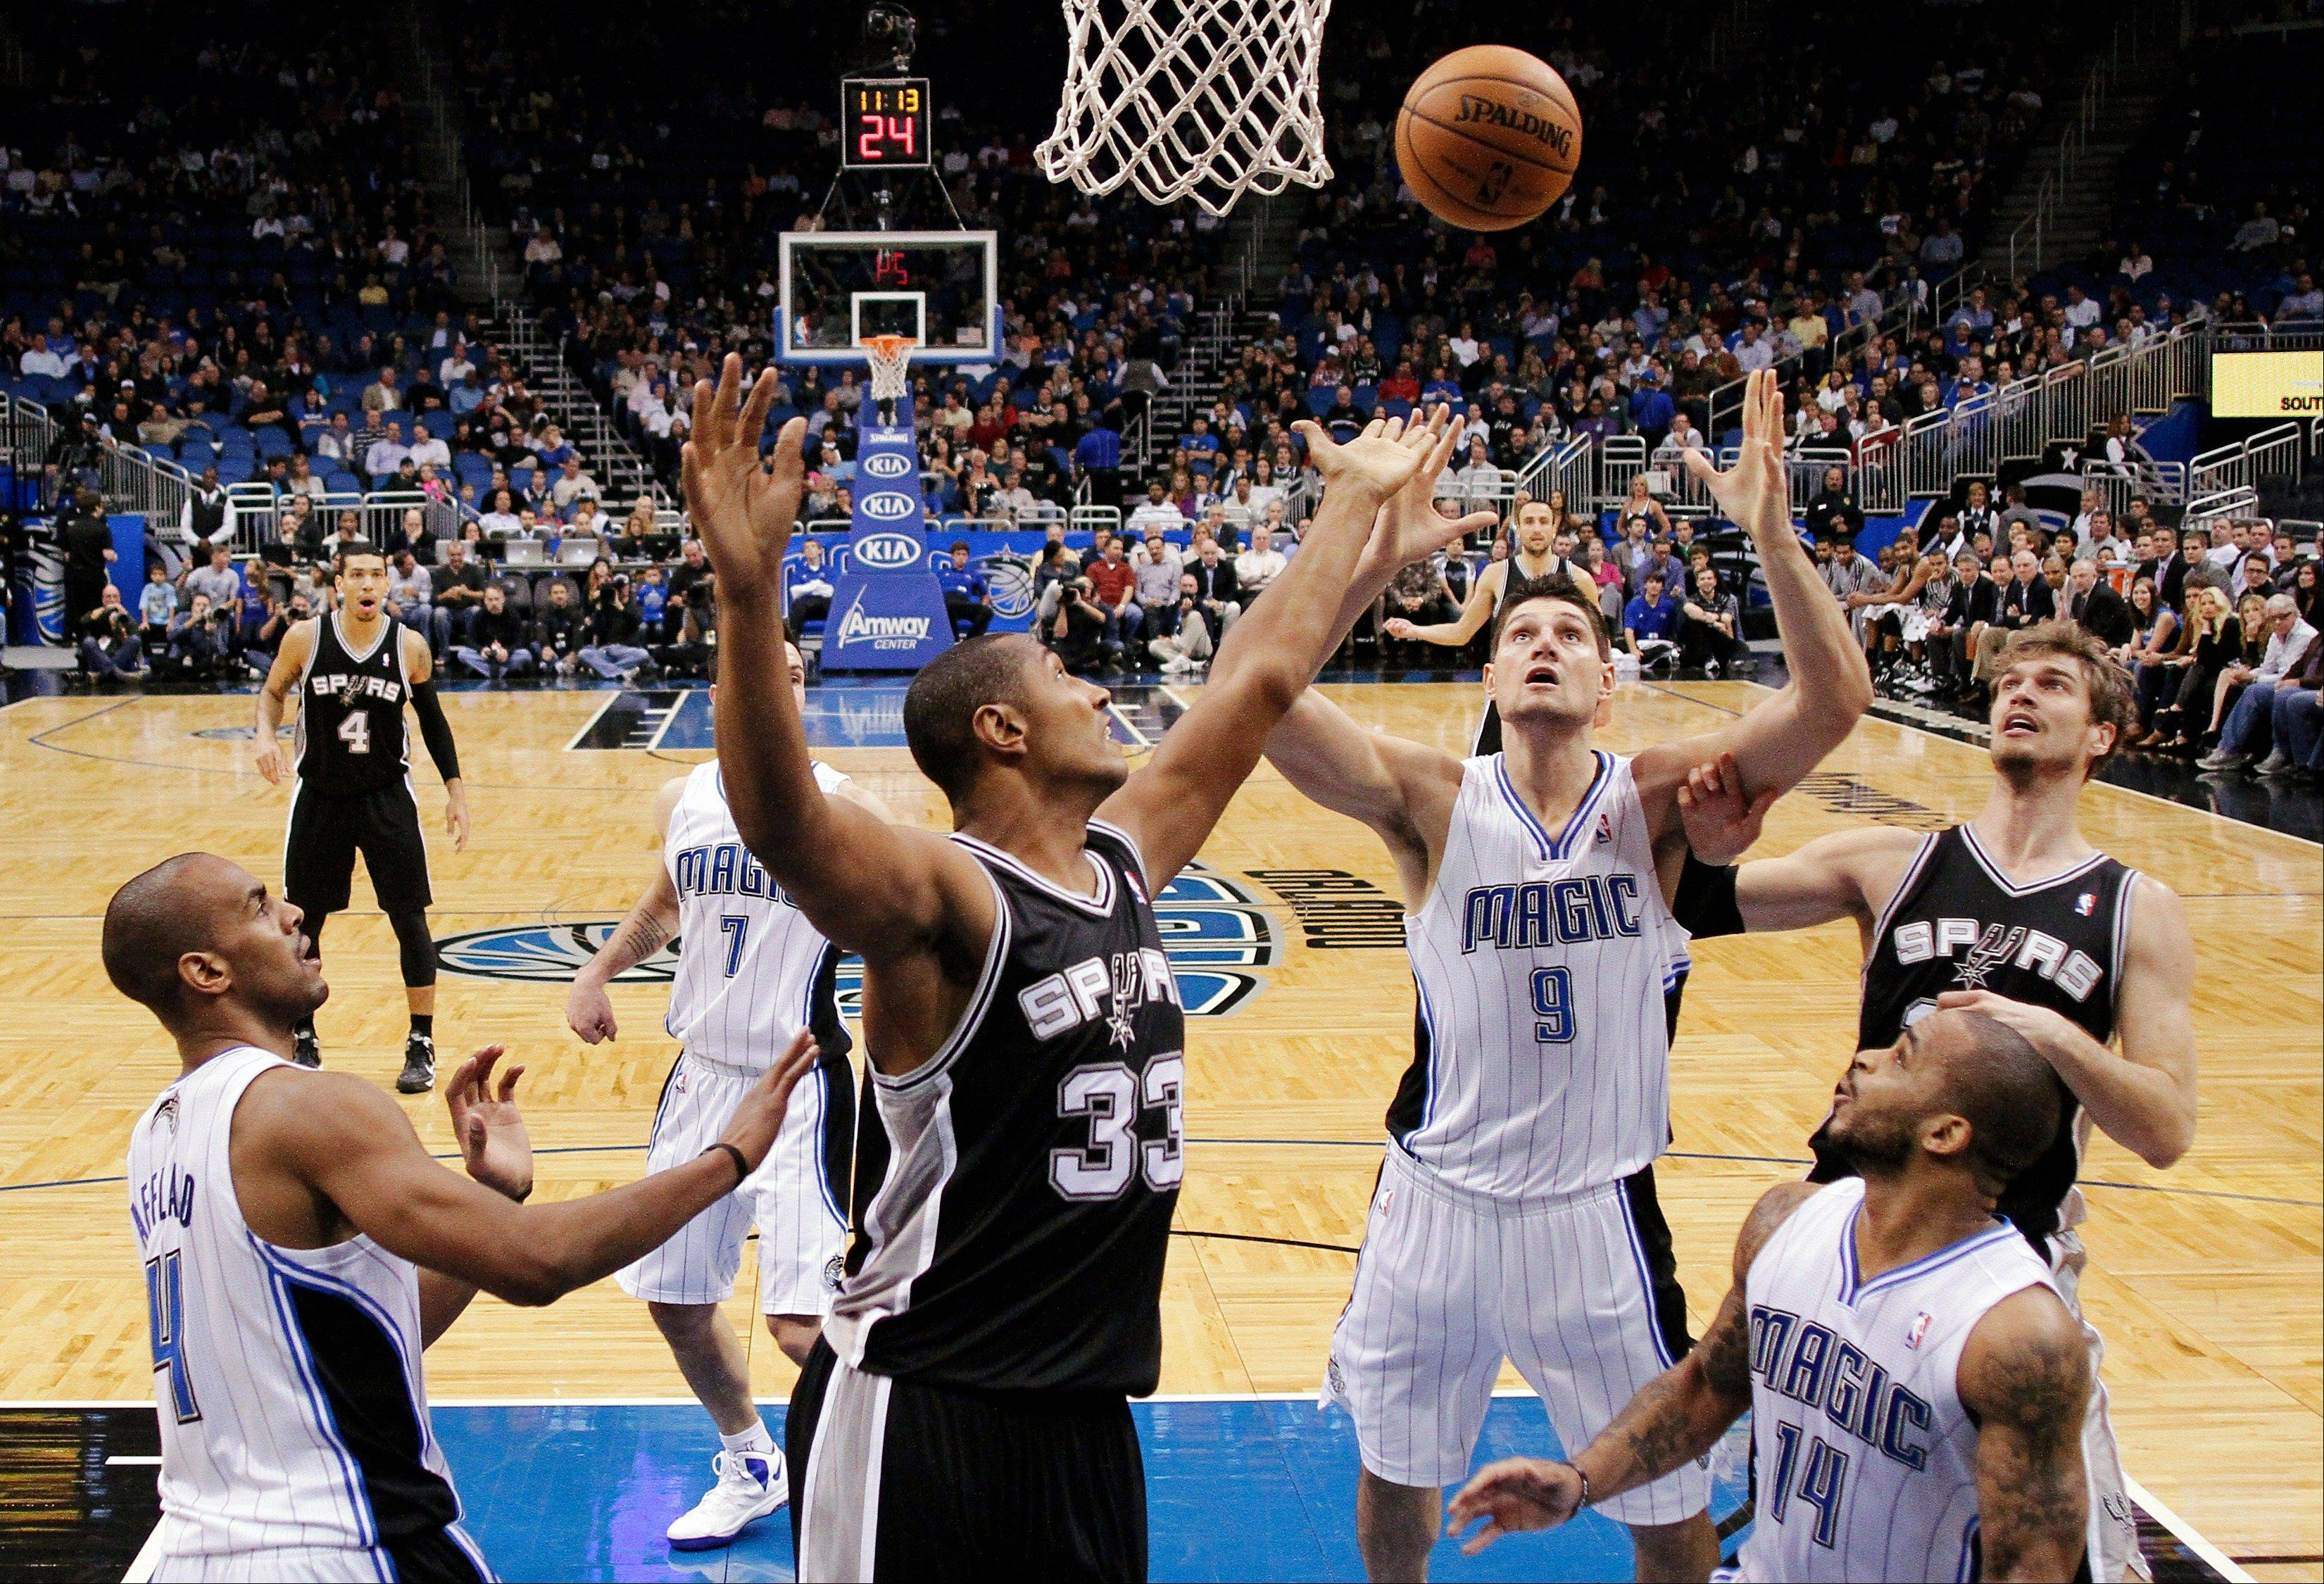 The San Antonio Spurs' Boris Diaw (33) battles for a rebound with Orlando Magic's Nikola Vucevic (9) as Arron Afflalo (4) and Jameer Nelson (14) watch Wednesday during the first half in Orlando, Fla.